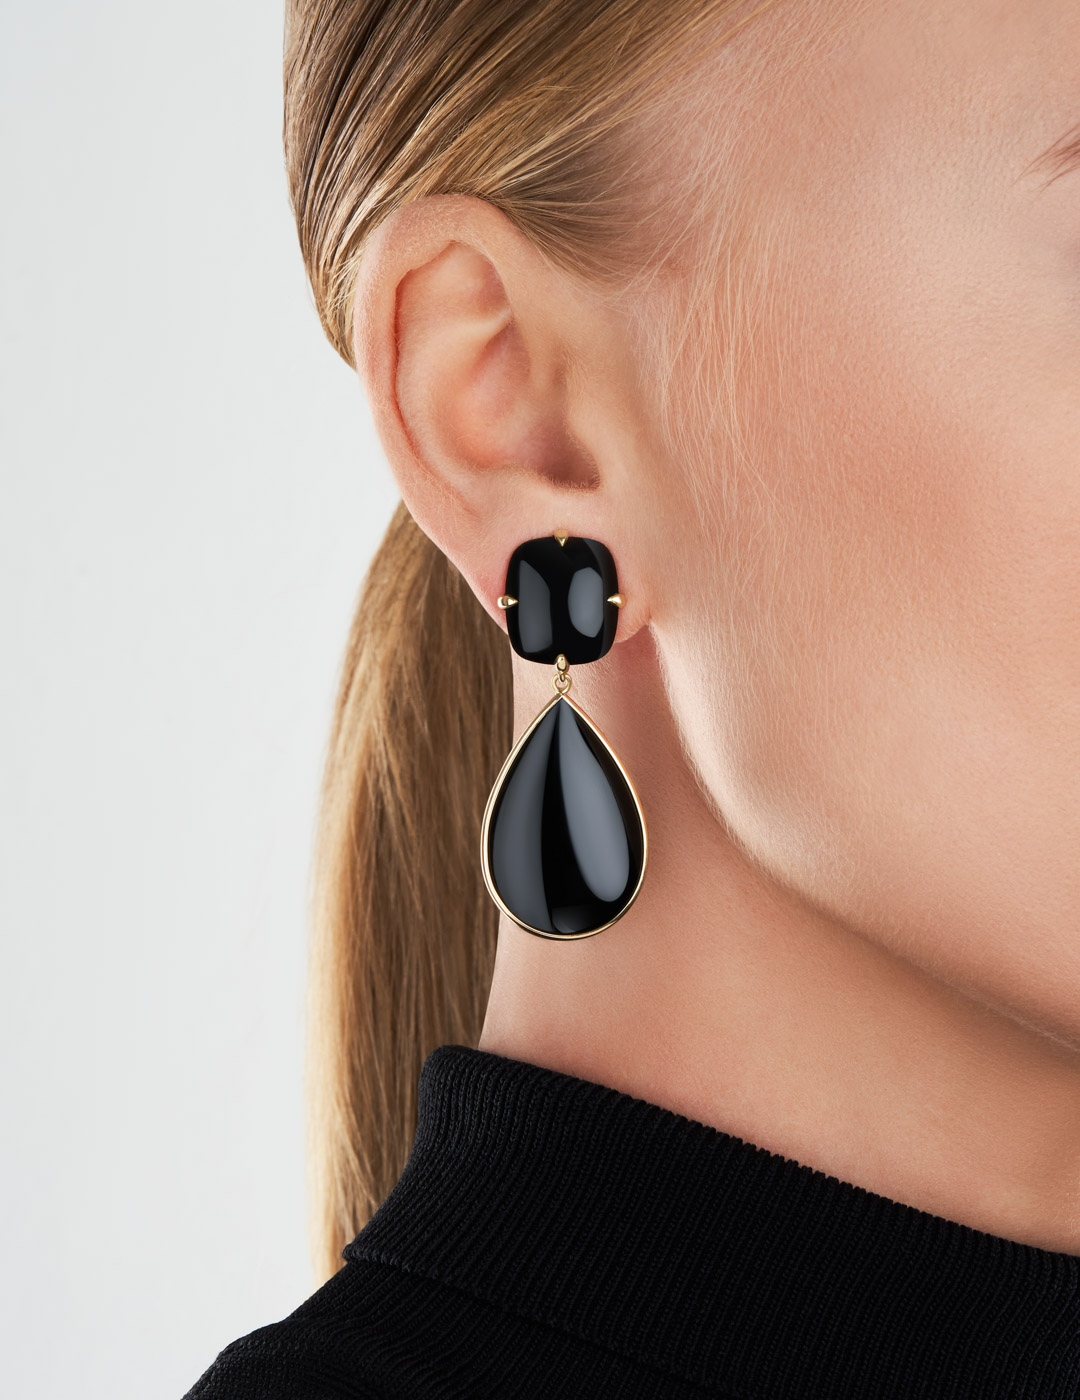 mish_products_earrings_Roadster-BlkOnyx-ER-2